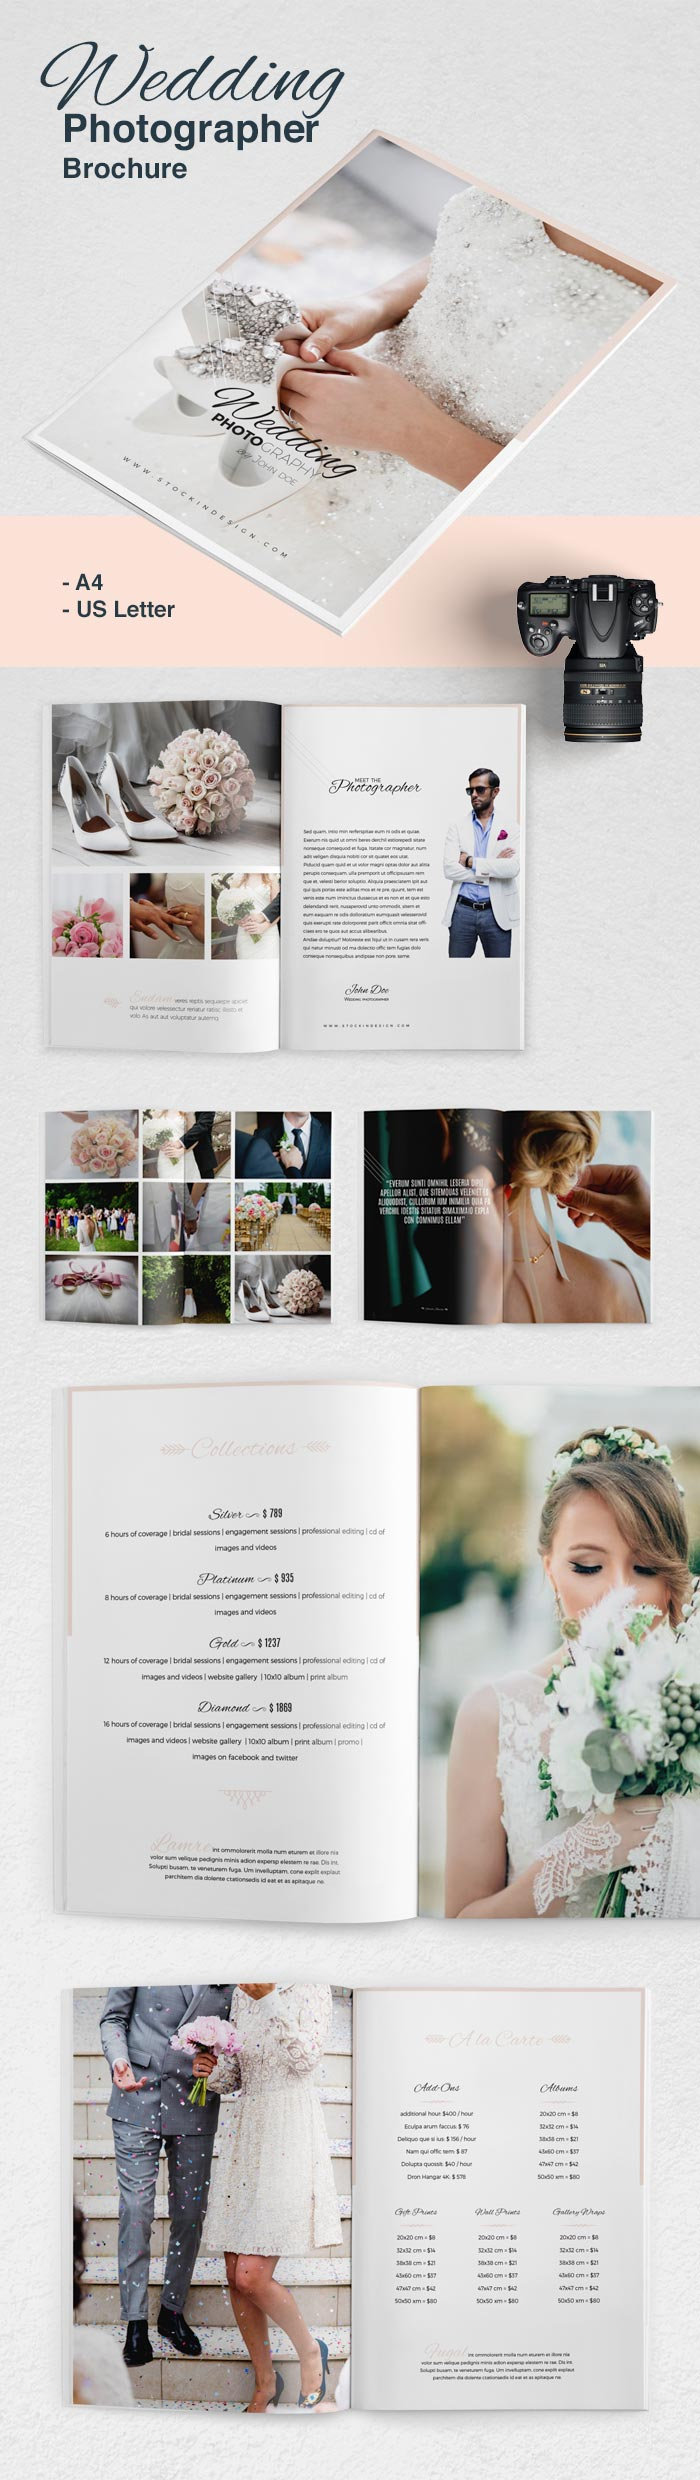 Wedding Photographer Templates